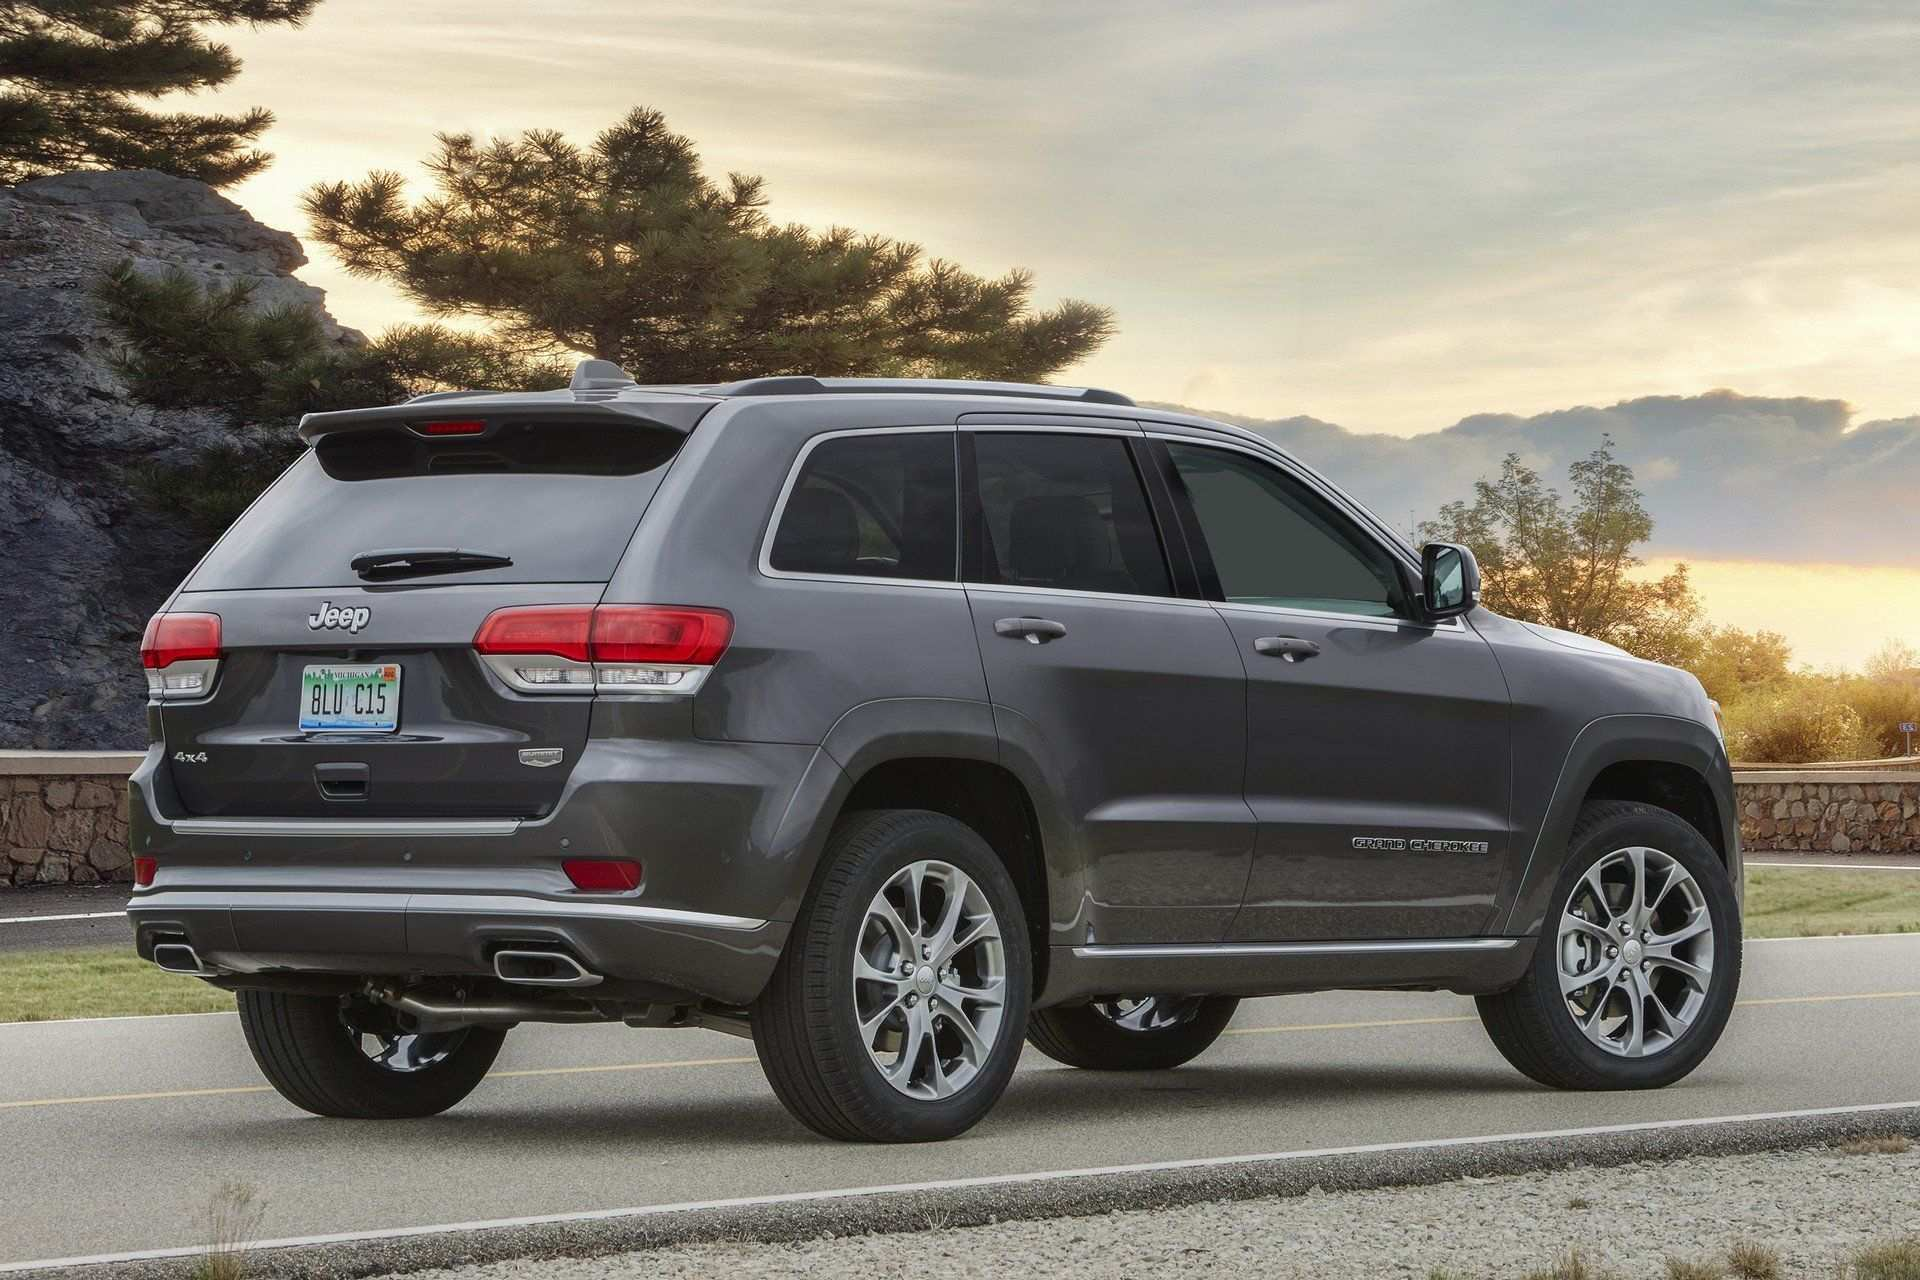 80 Concept of The Grand Cherokee Jeep 2019 Exterior And Interior Review Model with The Grand Cherokee Jeep 2019 Exterior And Interior Review